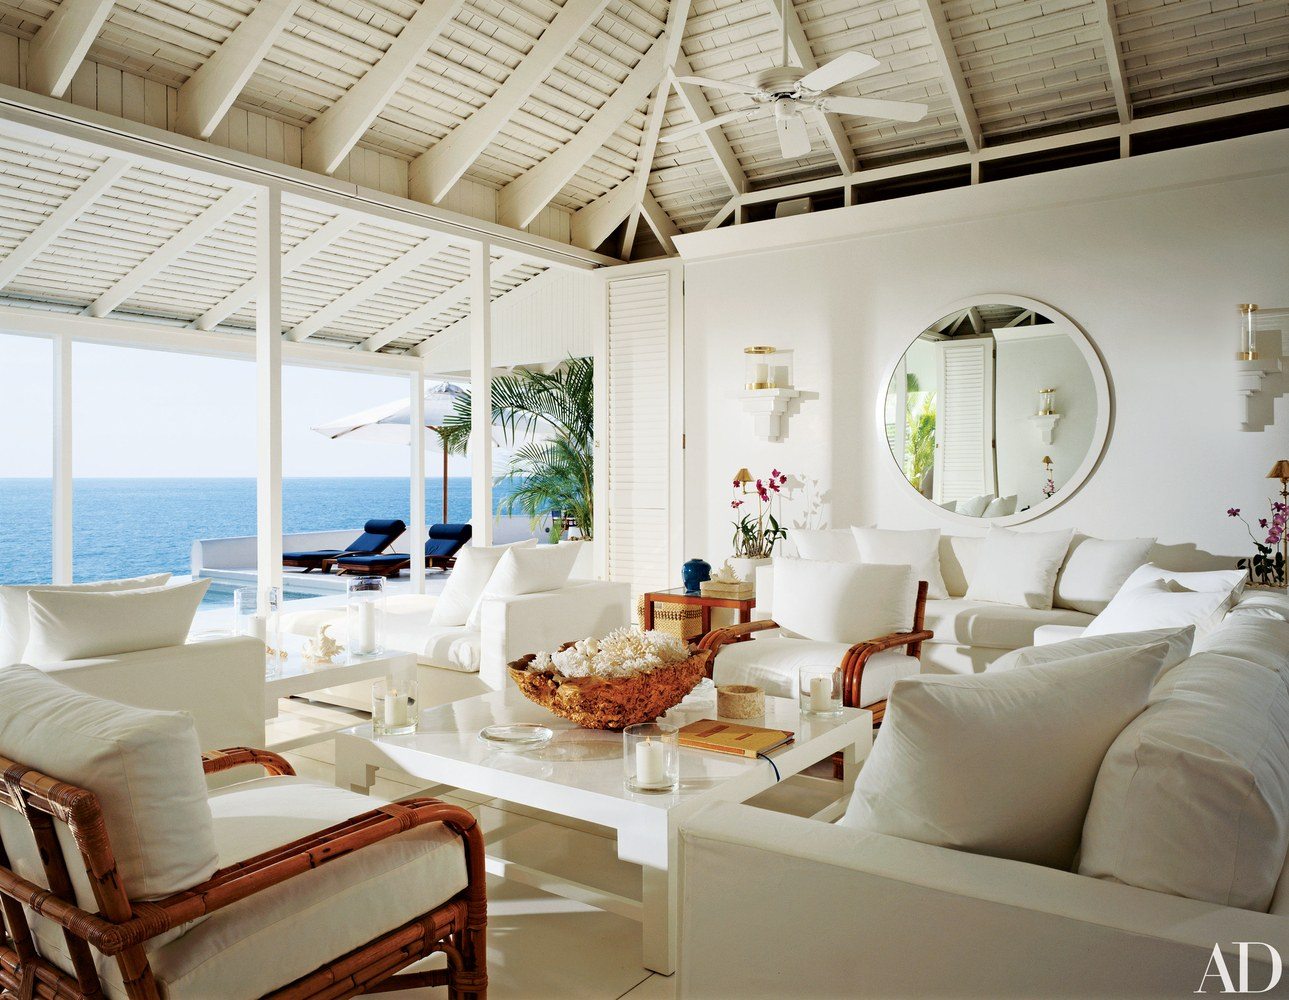 Smile Jamaica Round Hill Resort Interiors Forever Chic by Meg